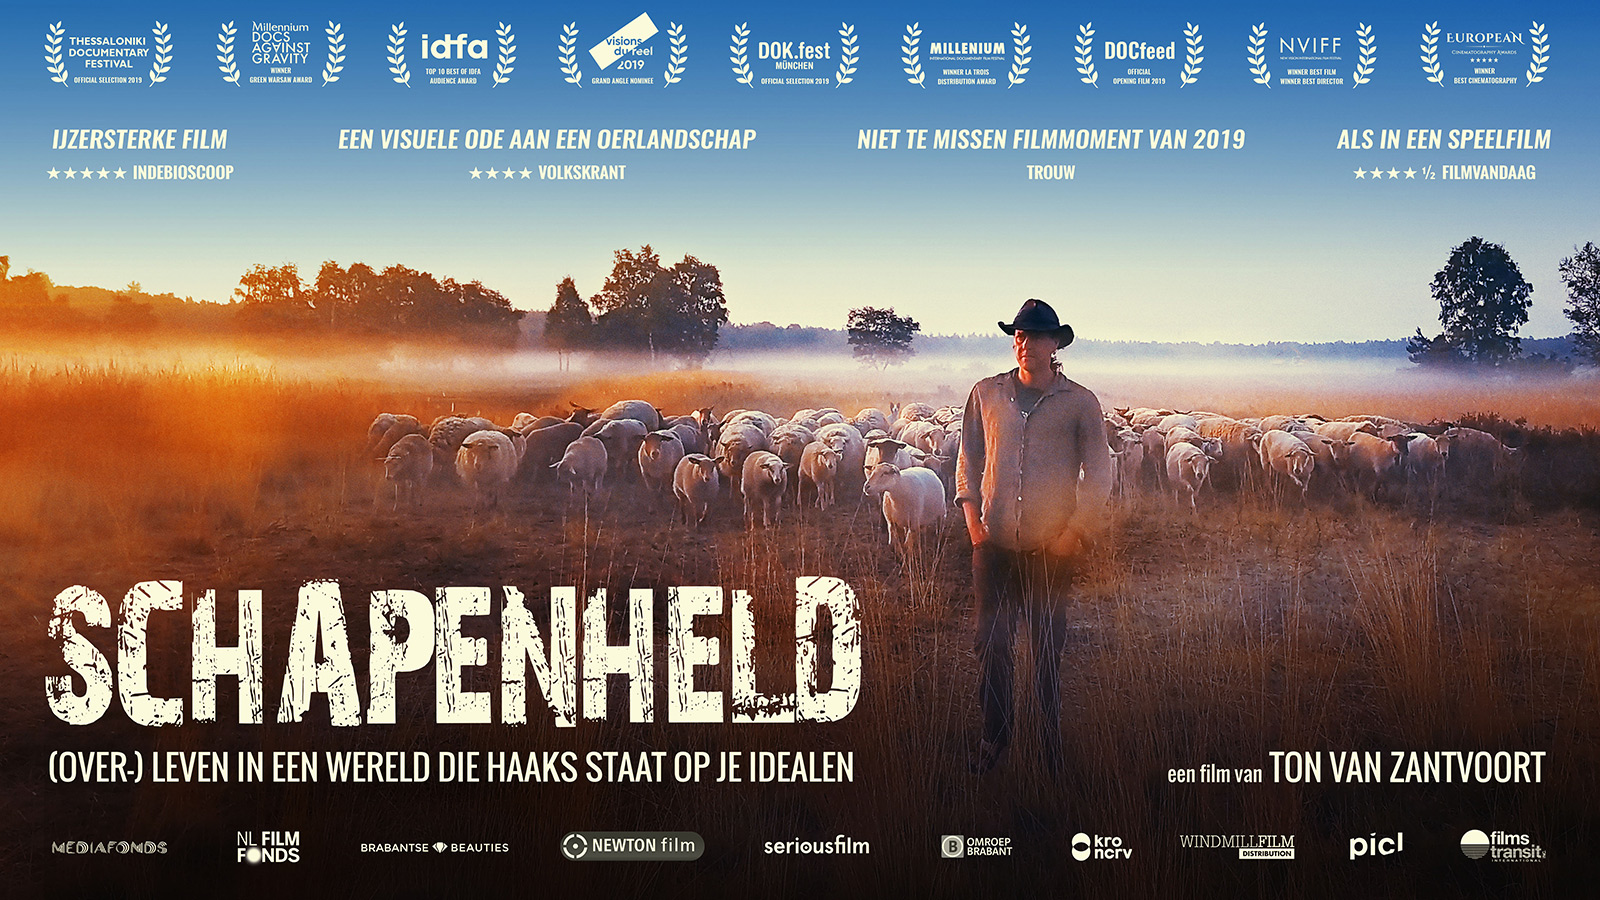 SCHAPENHELD DOCUMENTAIRE